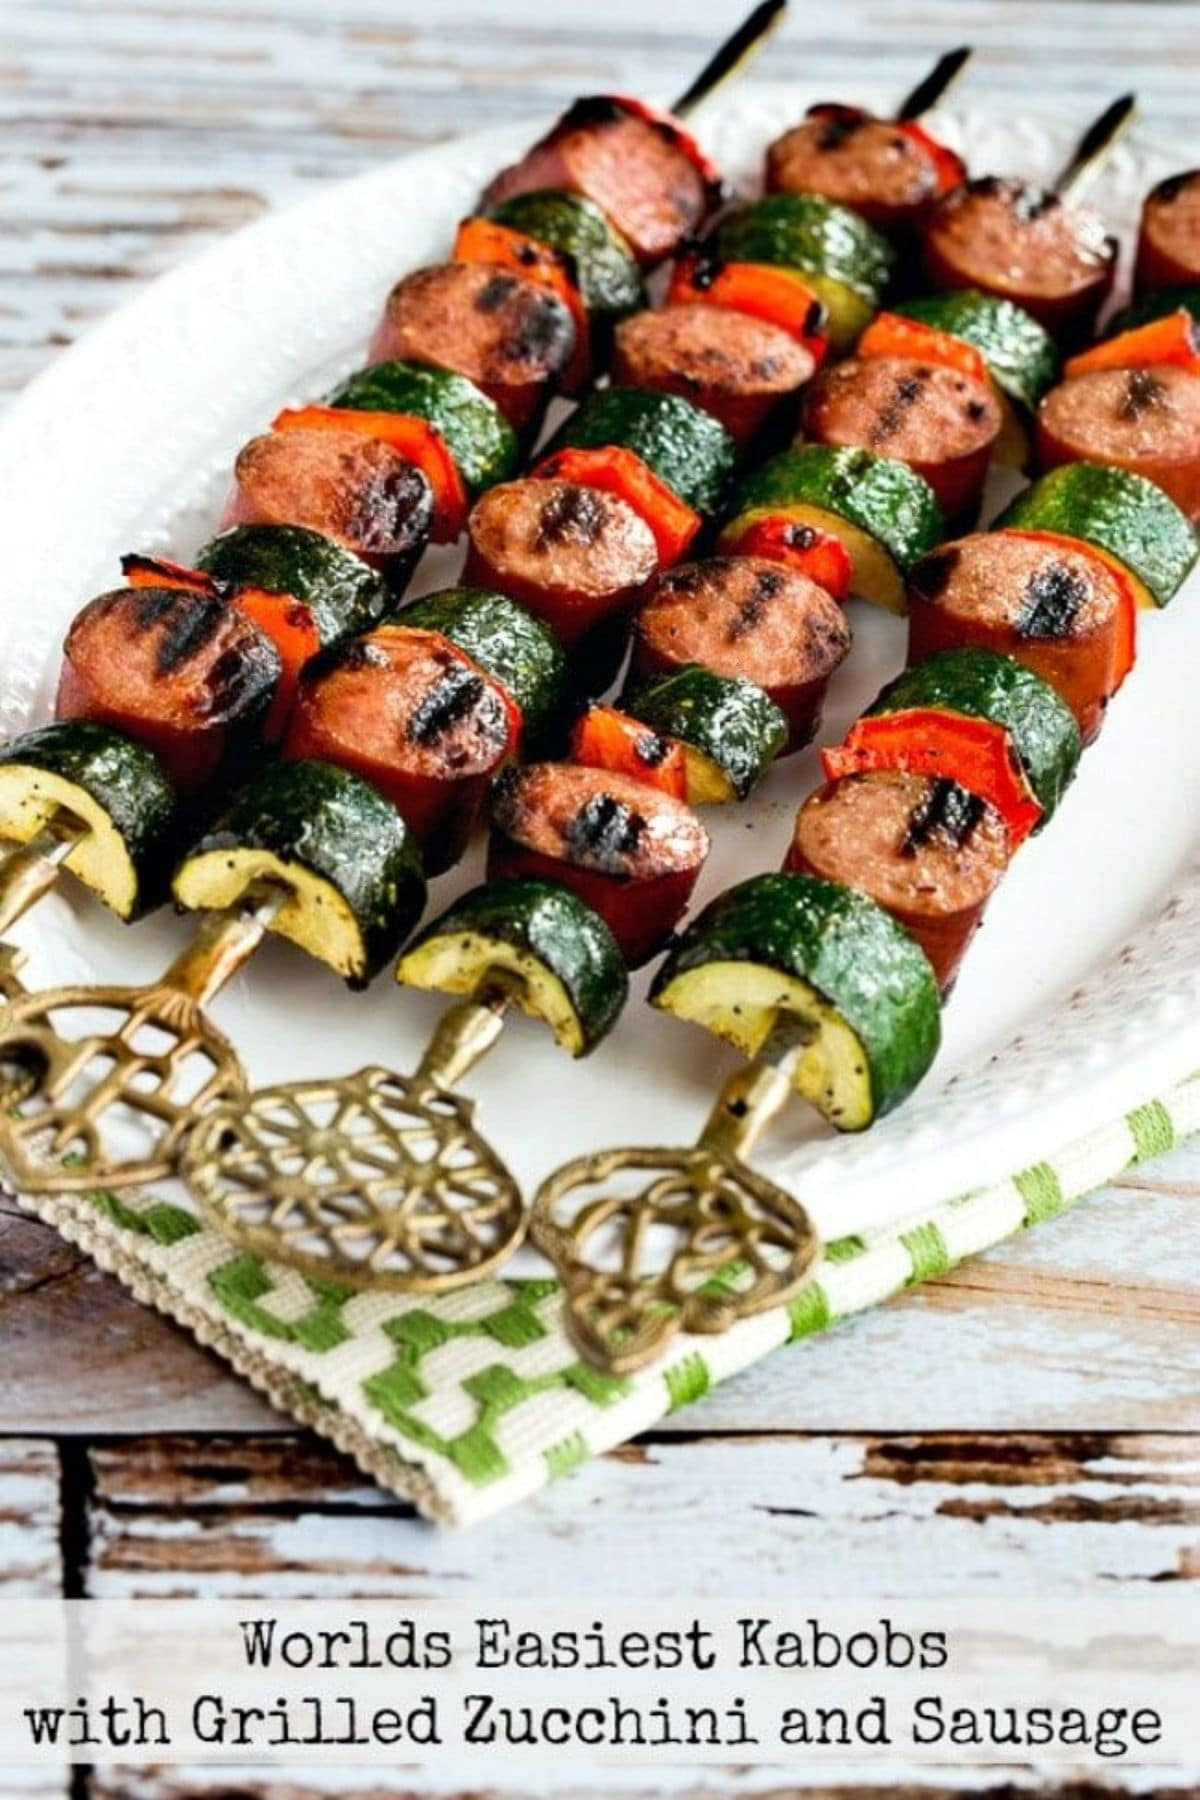 Kabobs with sausage and zucchini on white plate